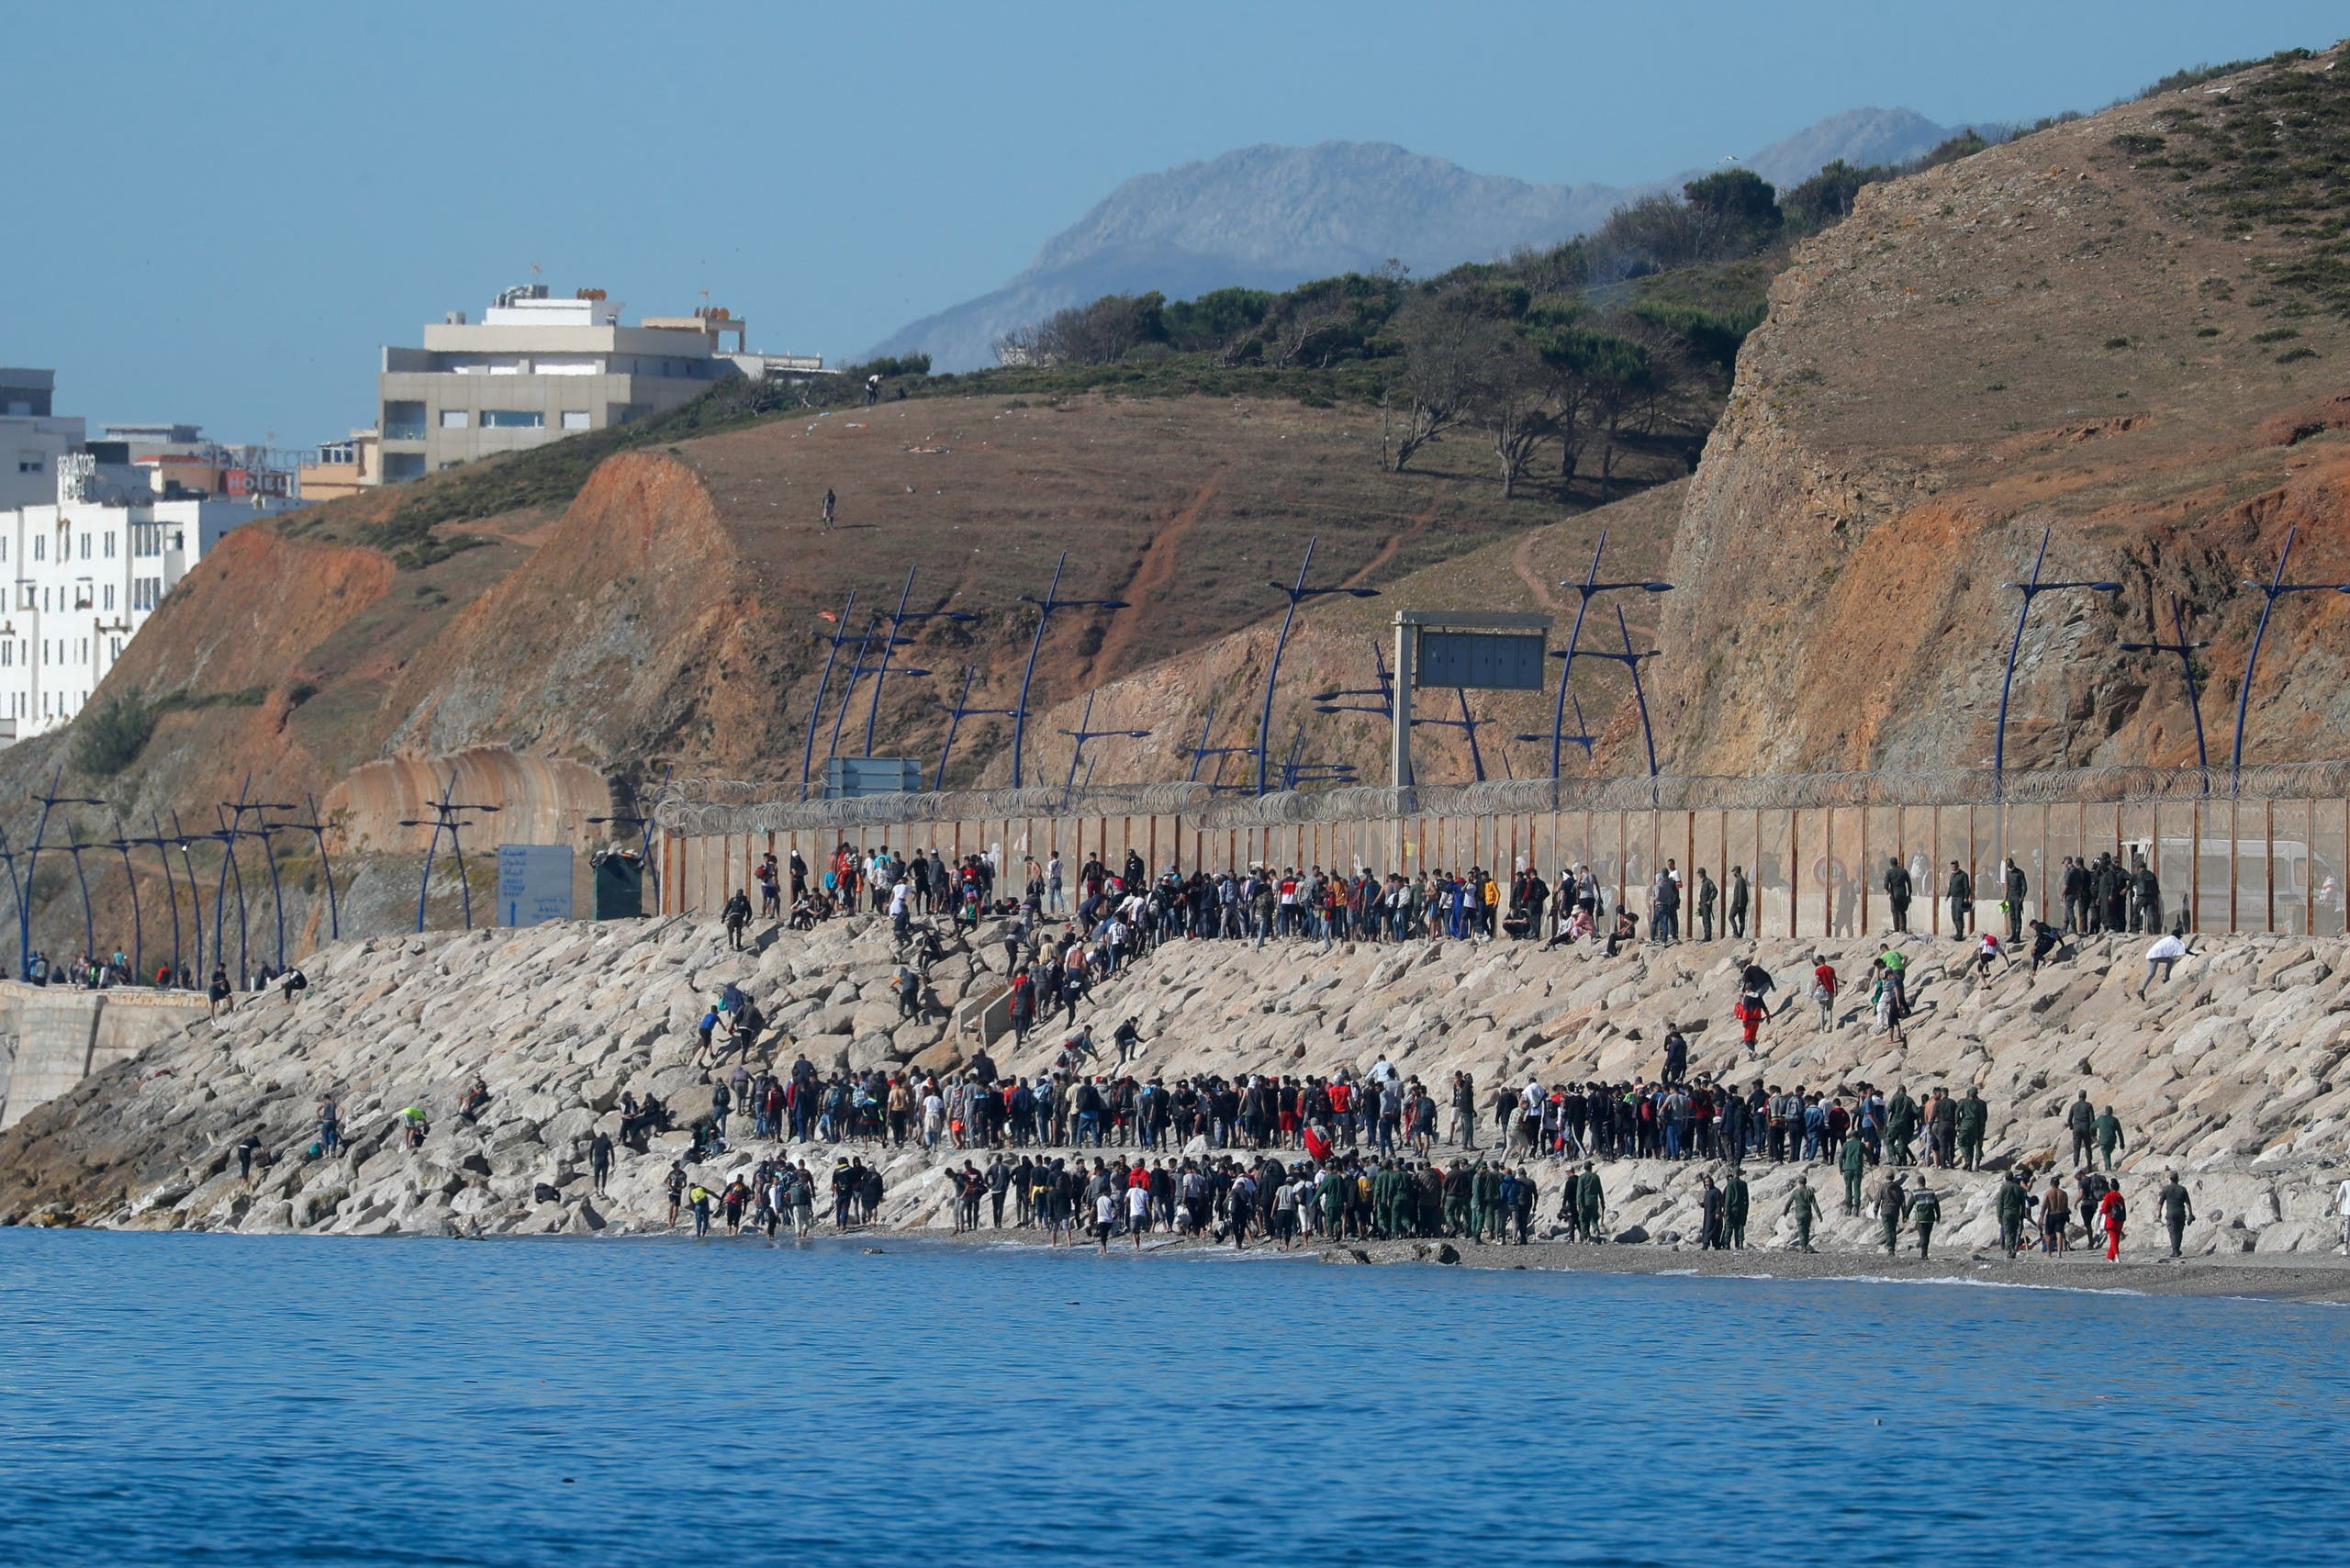 Migrants are led by Moroccan soldiers back to Morocco from El Tarajal beach, at the fence between the Spanish-Moroccan border, after thousands of migrants swam across the border, in Ceuta, Spain, May 19, 2021. (Reuters)